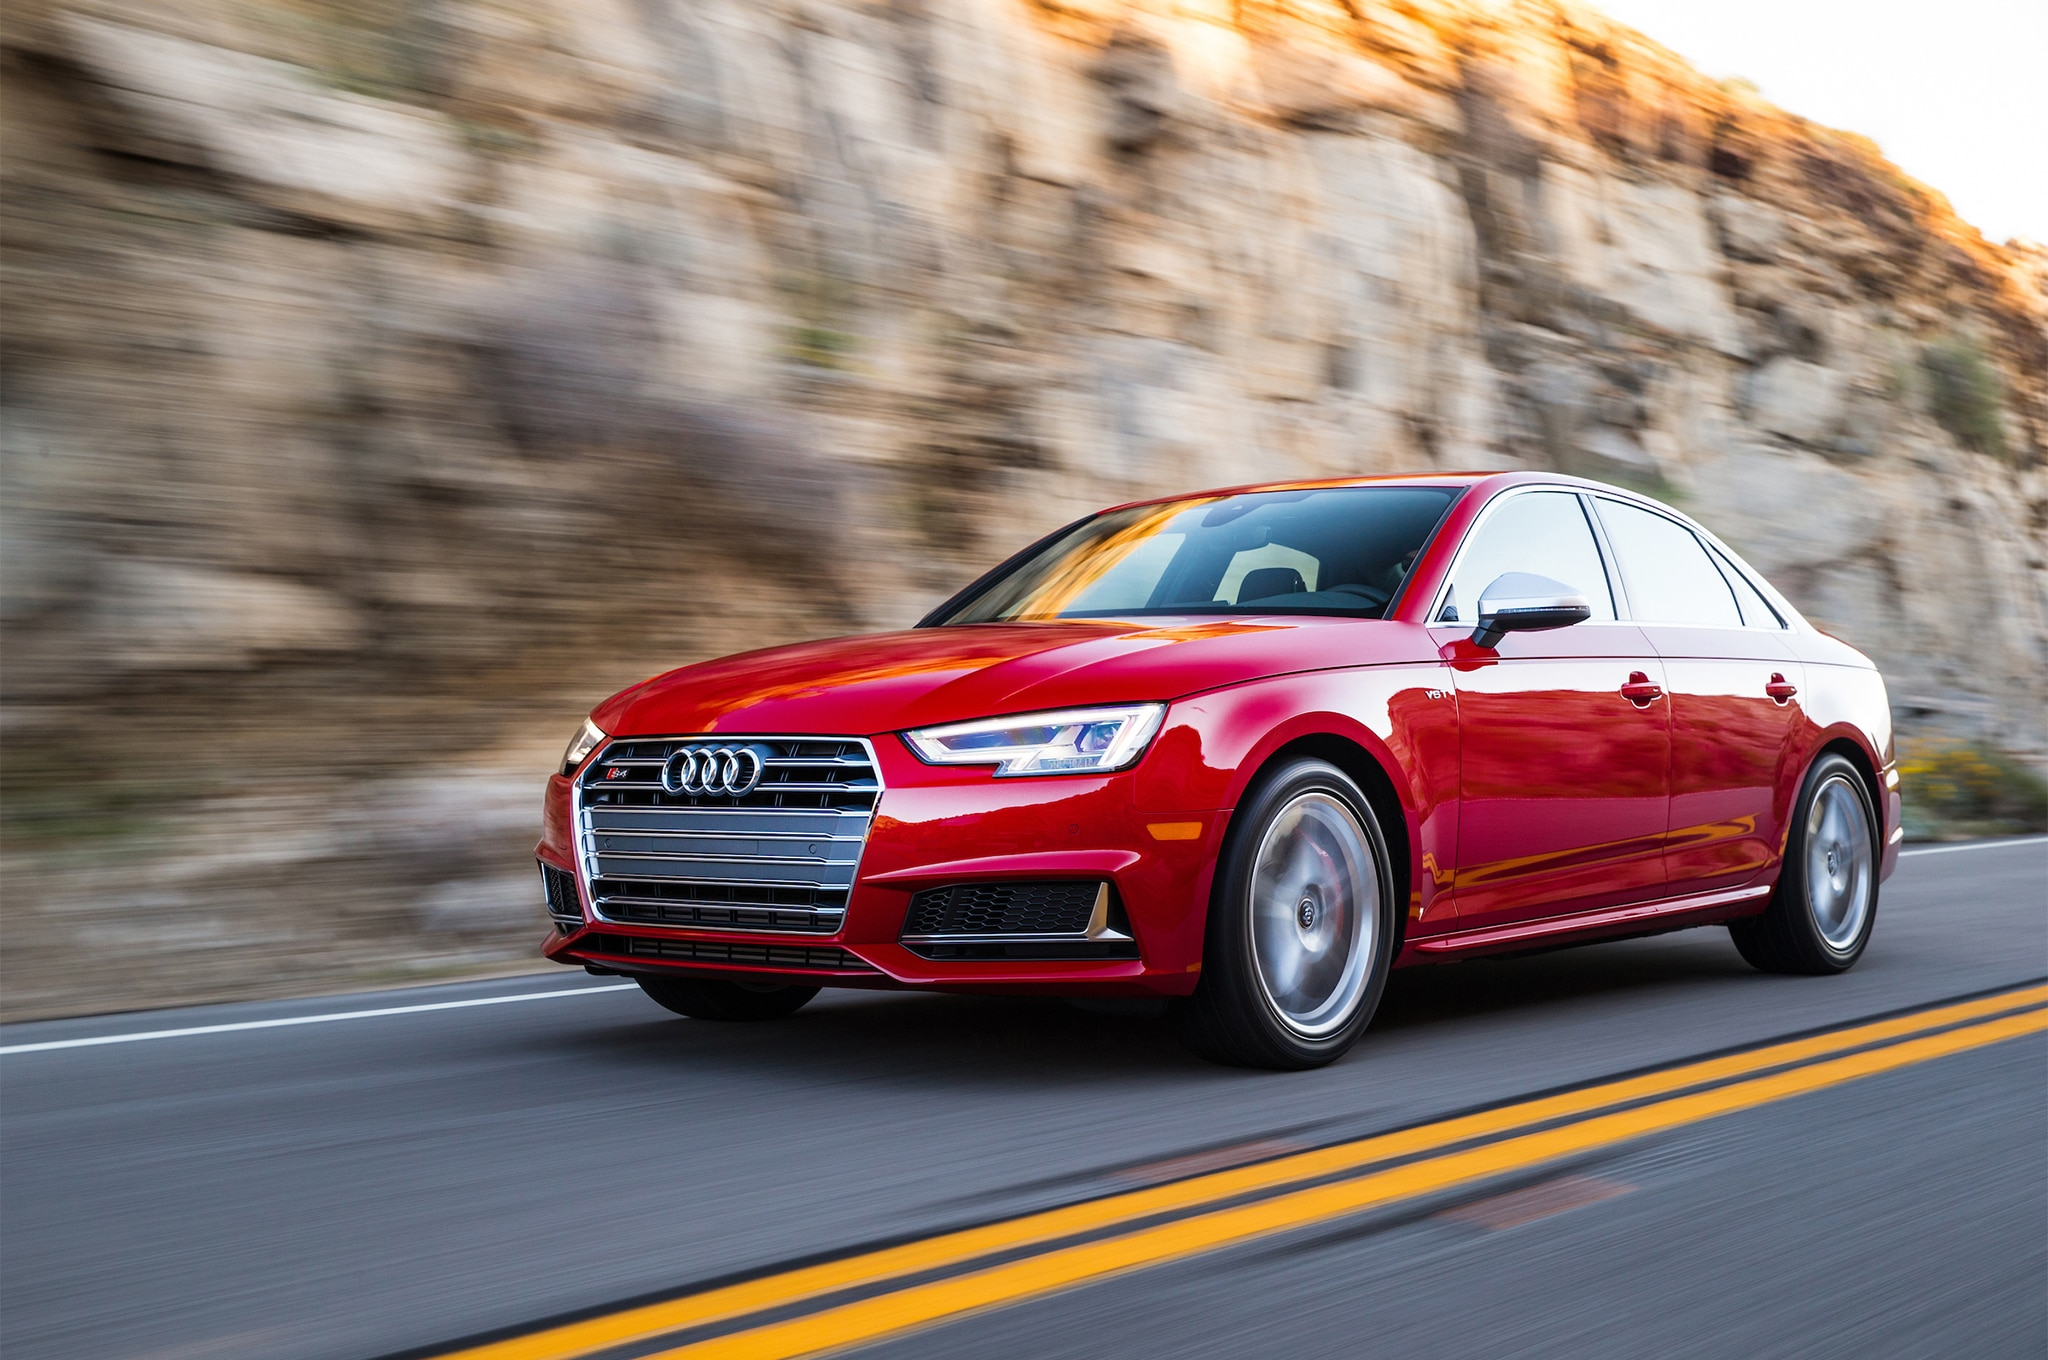 2018 Audi S4 Front Three Quarter In Motion 02